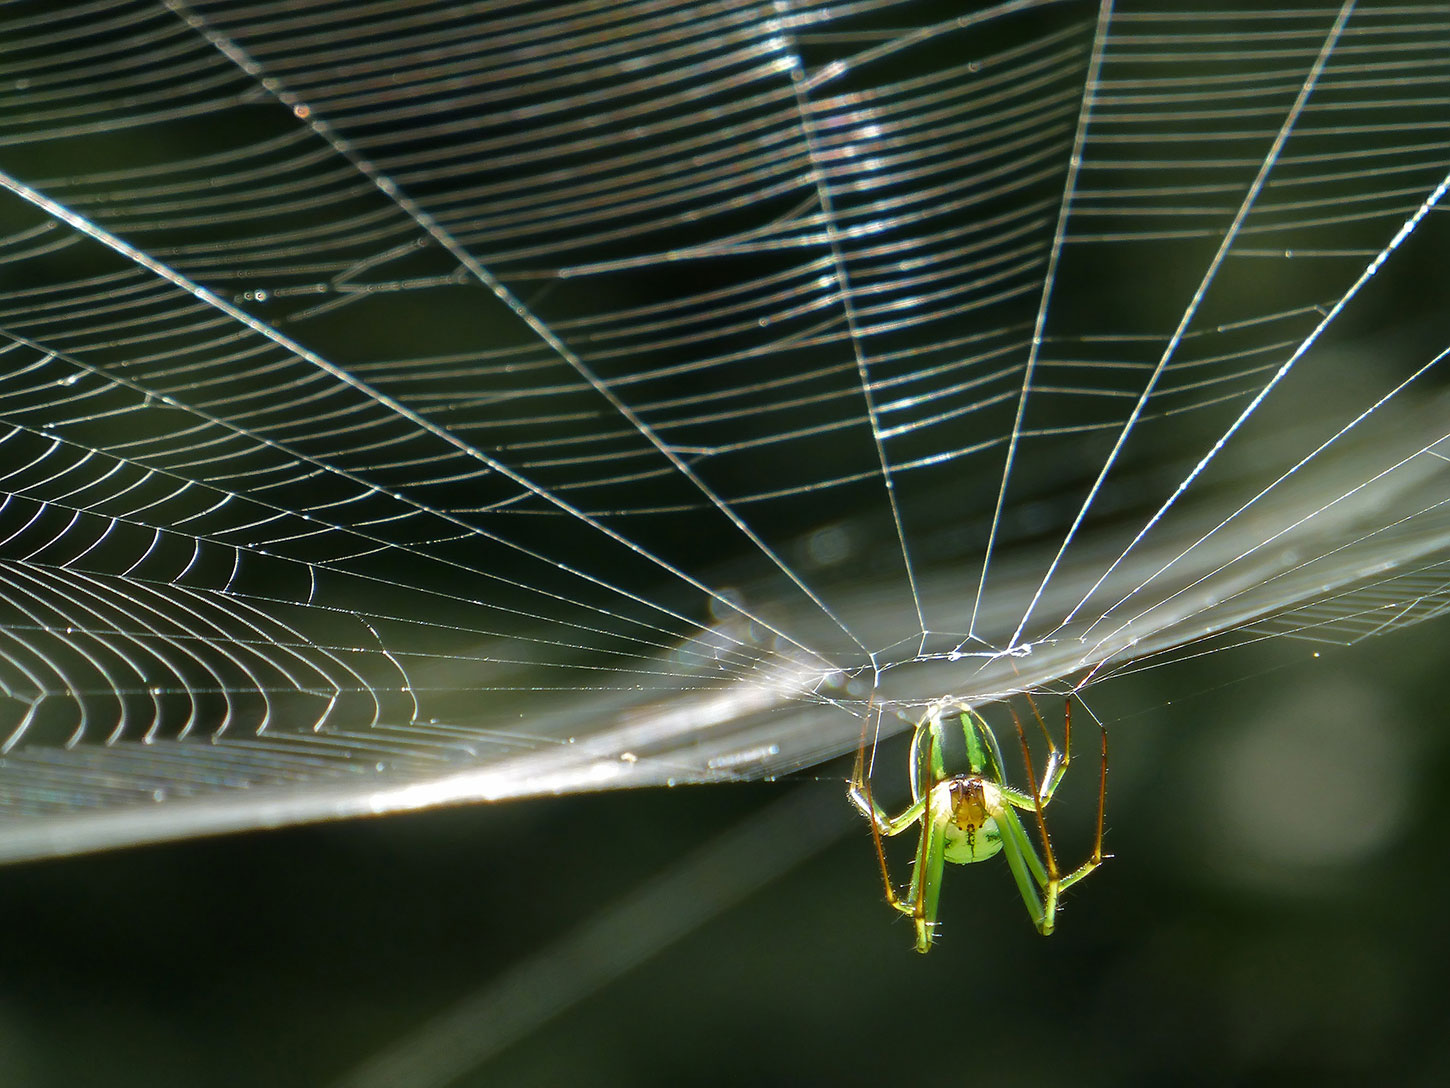 Old Roads, New Stories: Why We Have Spiders, by Rob Carney